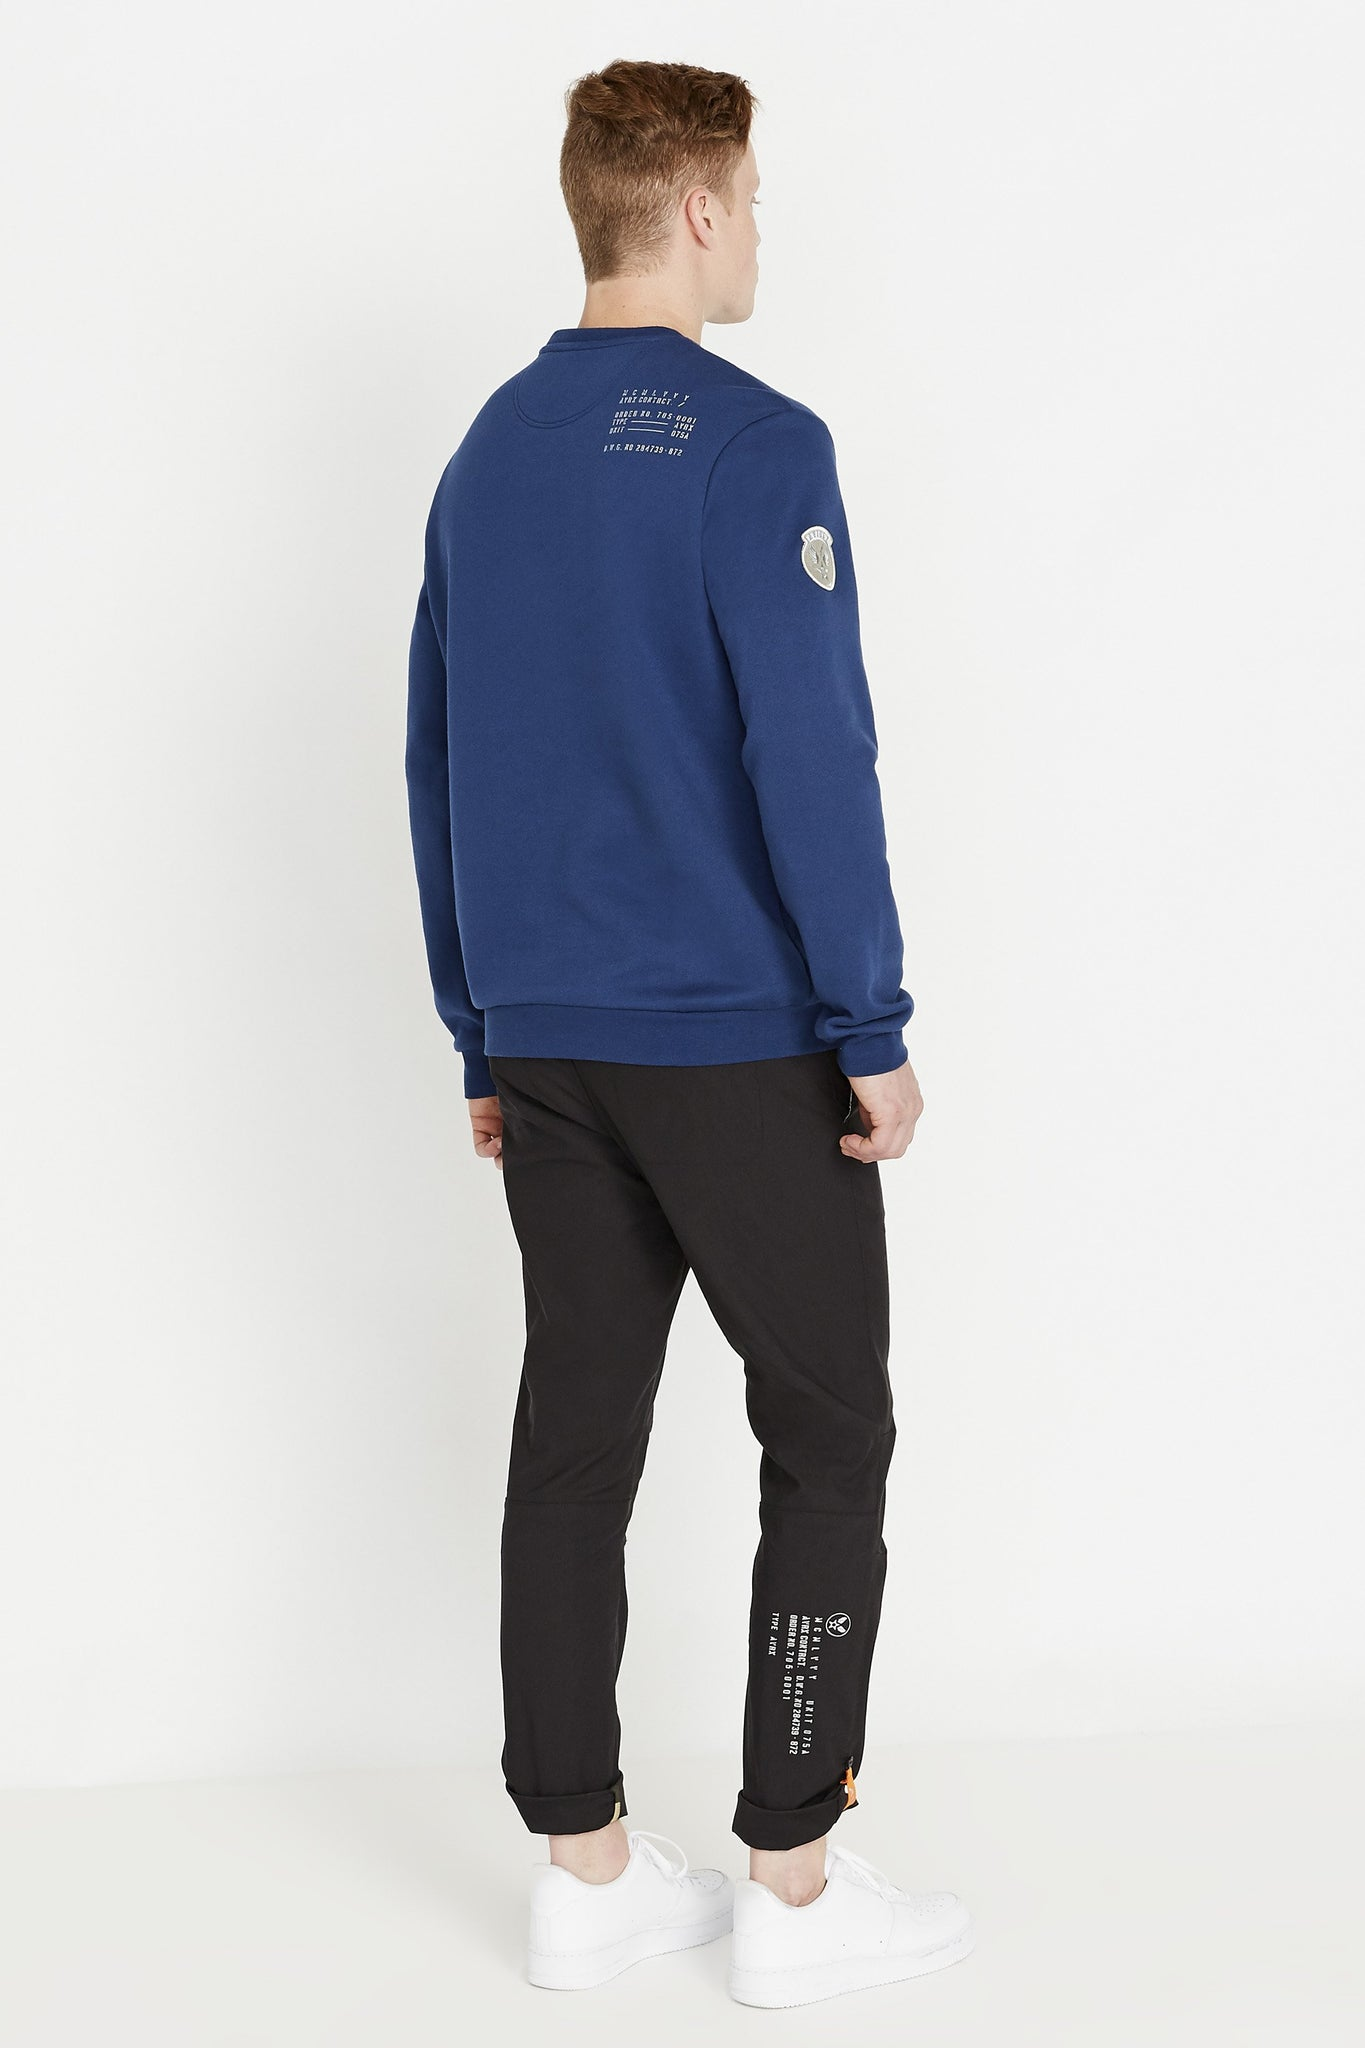 Back full view of men wearing a blue long sleeve crew neck sweater with utility print on back shoulder and black pants